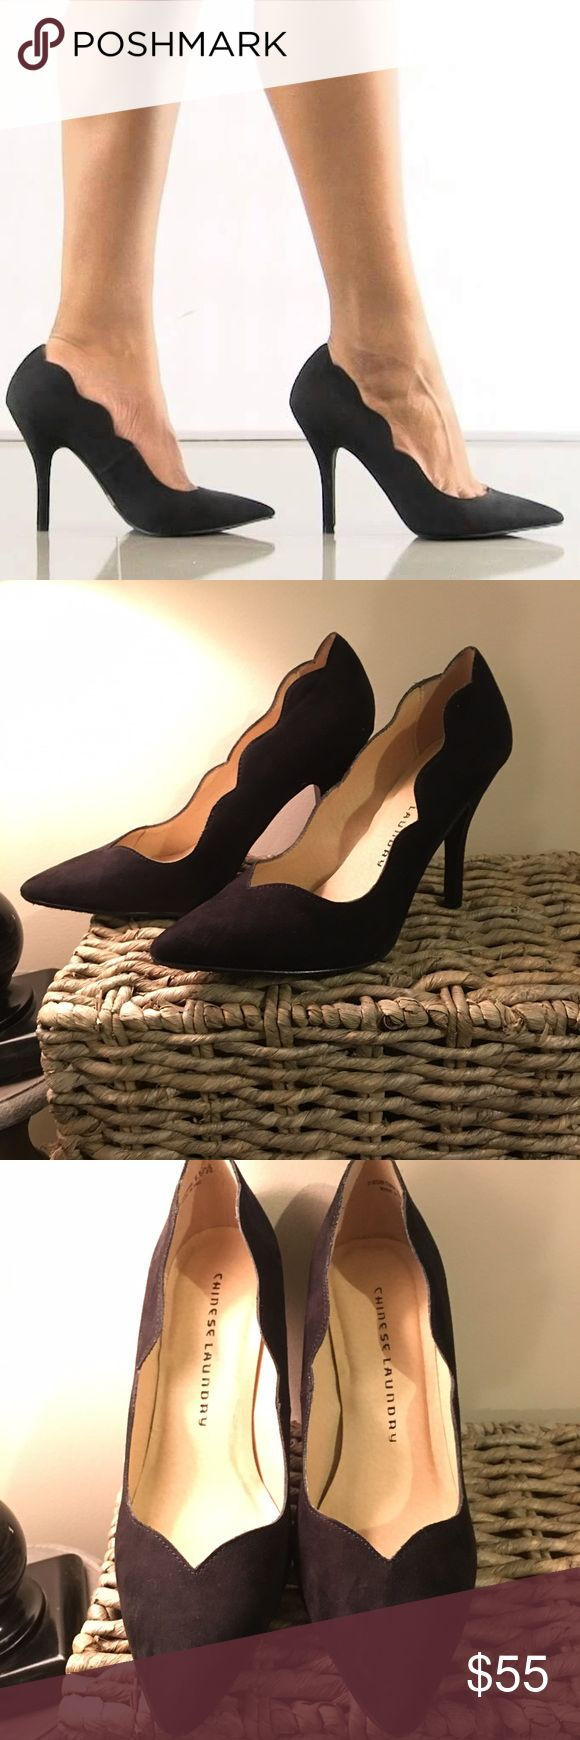 Chinese Laundry heels Brand new Chinese Laundry black scallop pump, size 8 1/2M!        Offers are more than welcome :) Chinese Laundry Shoes Heels